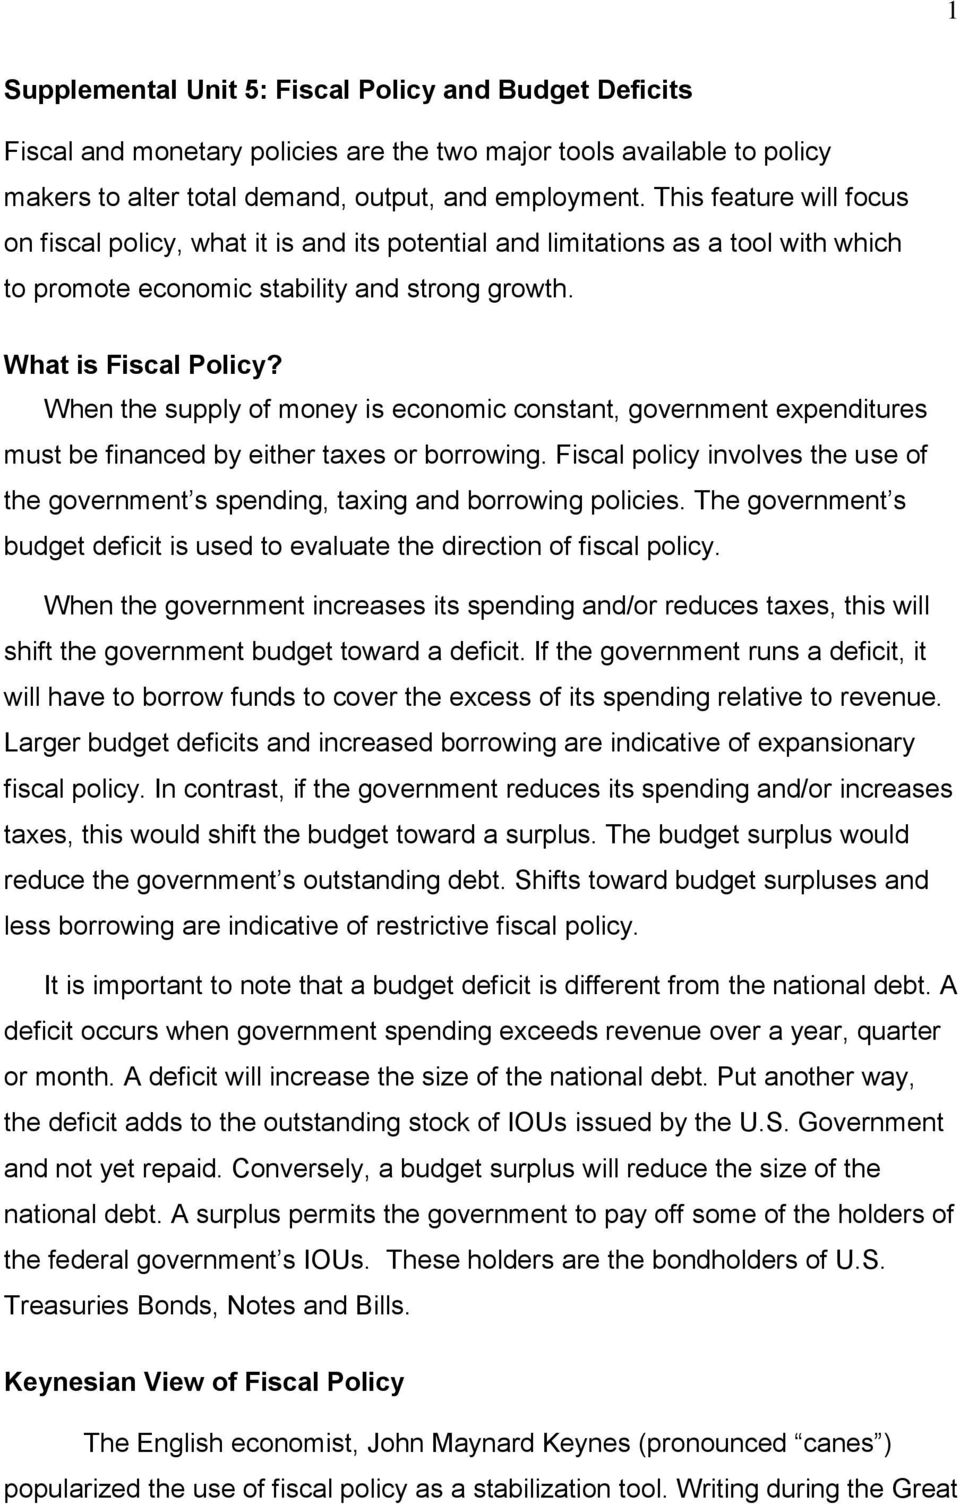 When the supply of money is economic constant, government expenditures must be financed by either taxes or borrowing.